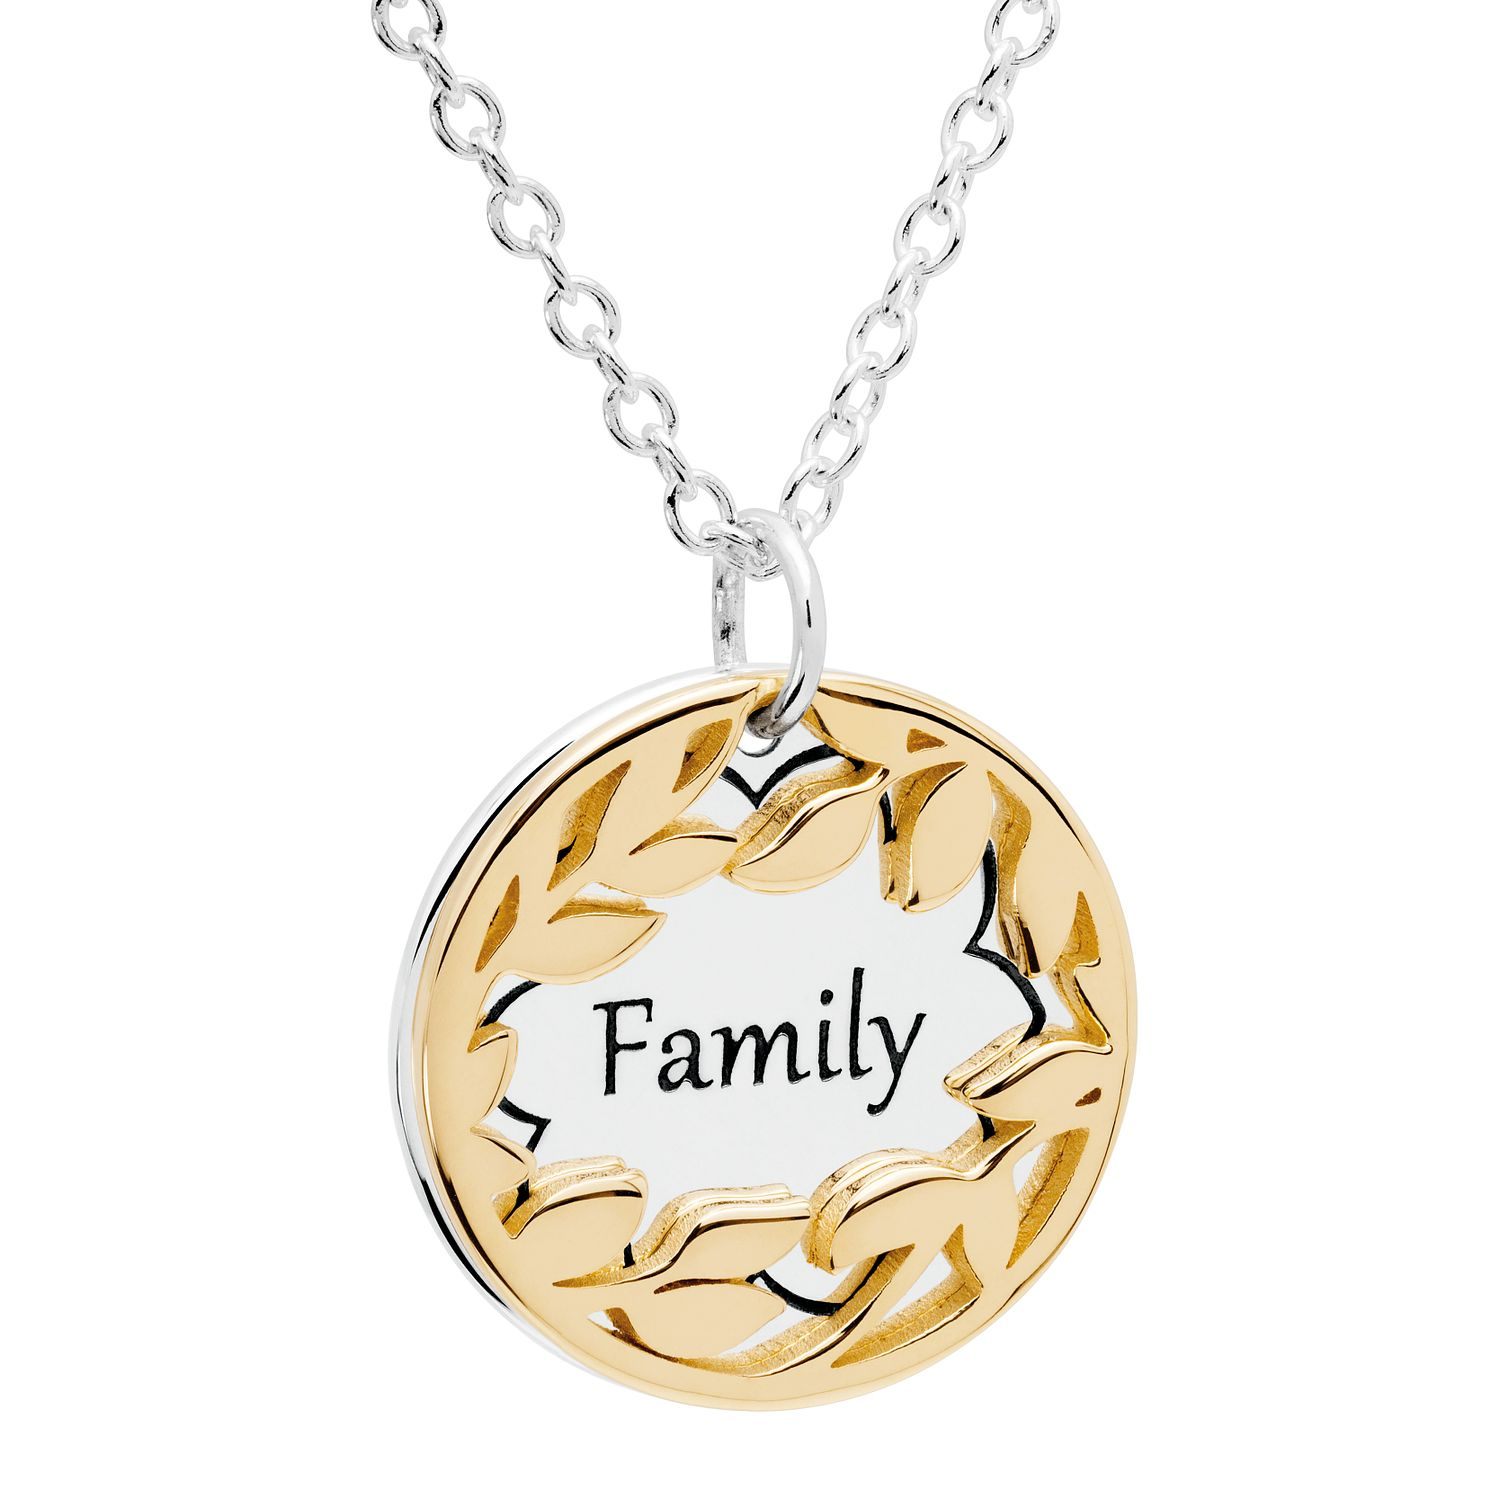 Chamilia Gold Electroplated Family Treasure Necklace - Product number 5196361